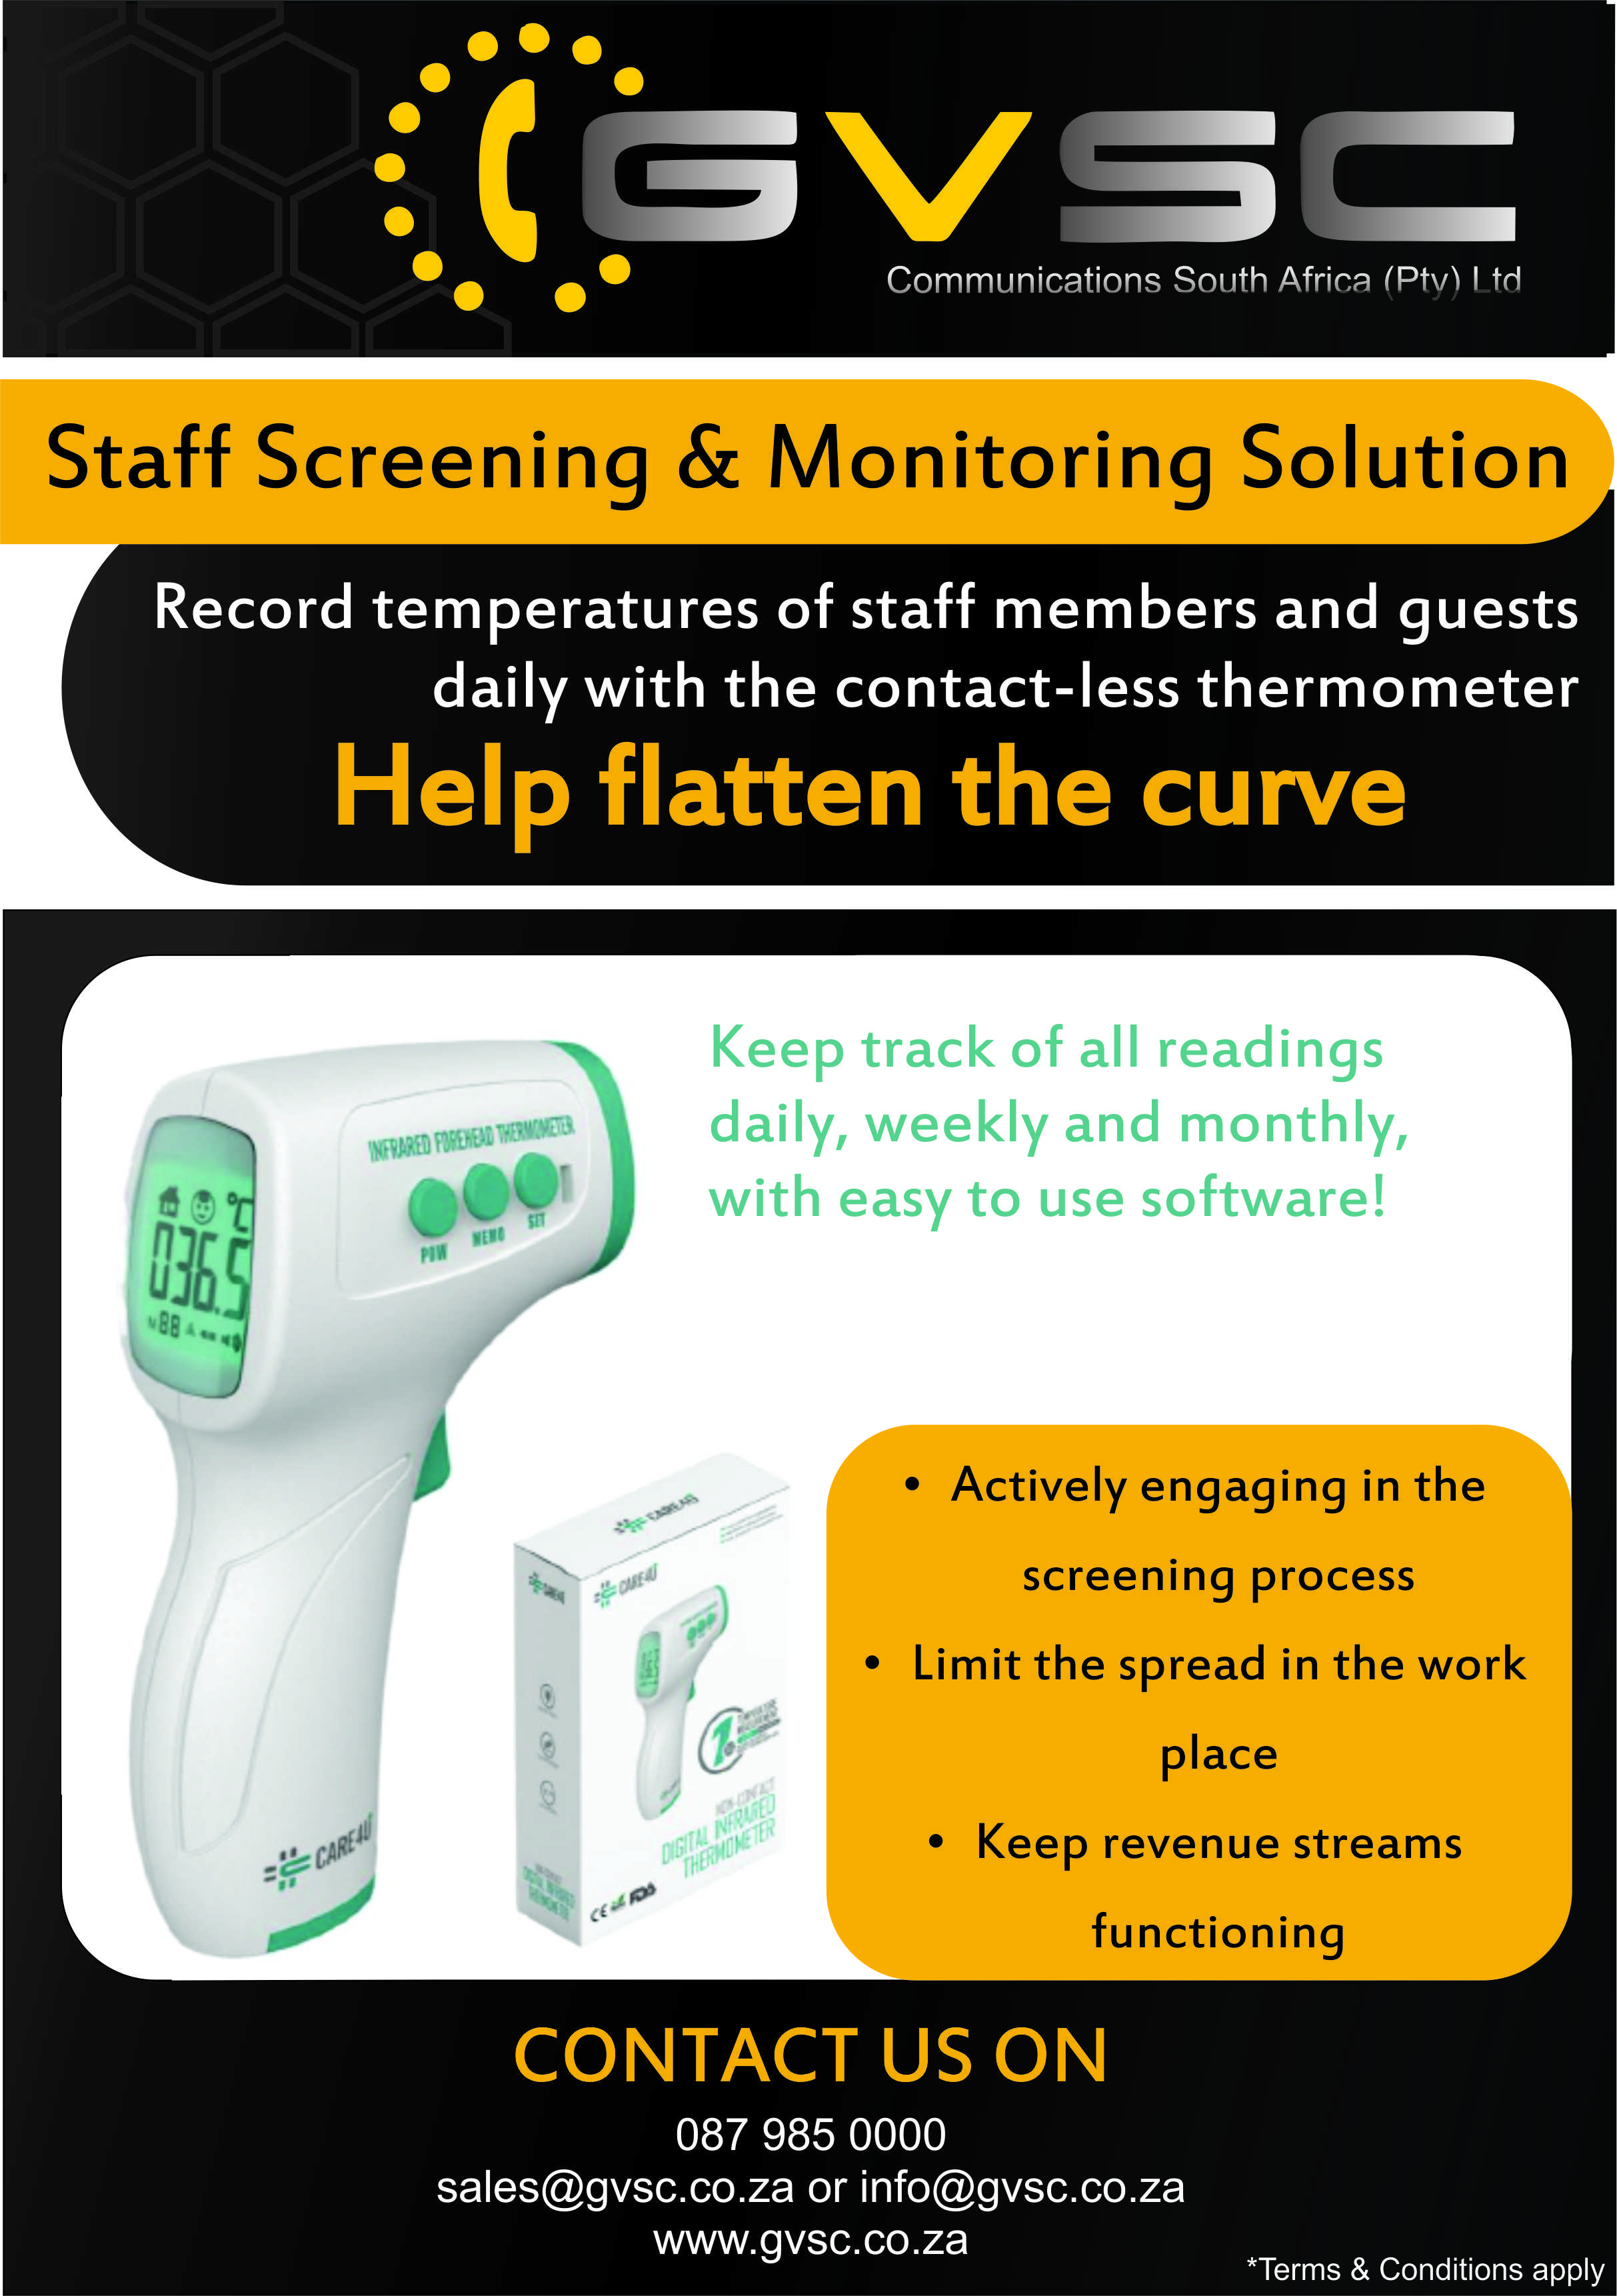 GVSC Staff Screening Solution with Handheld Thermometer